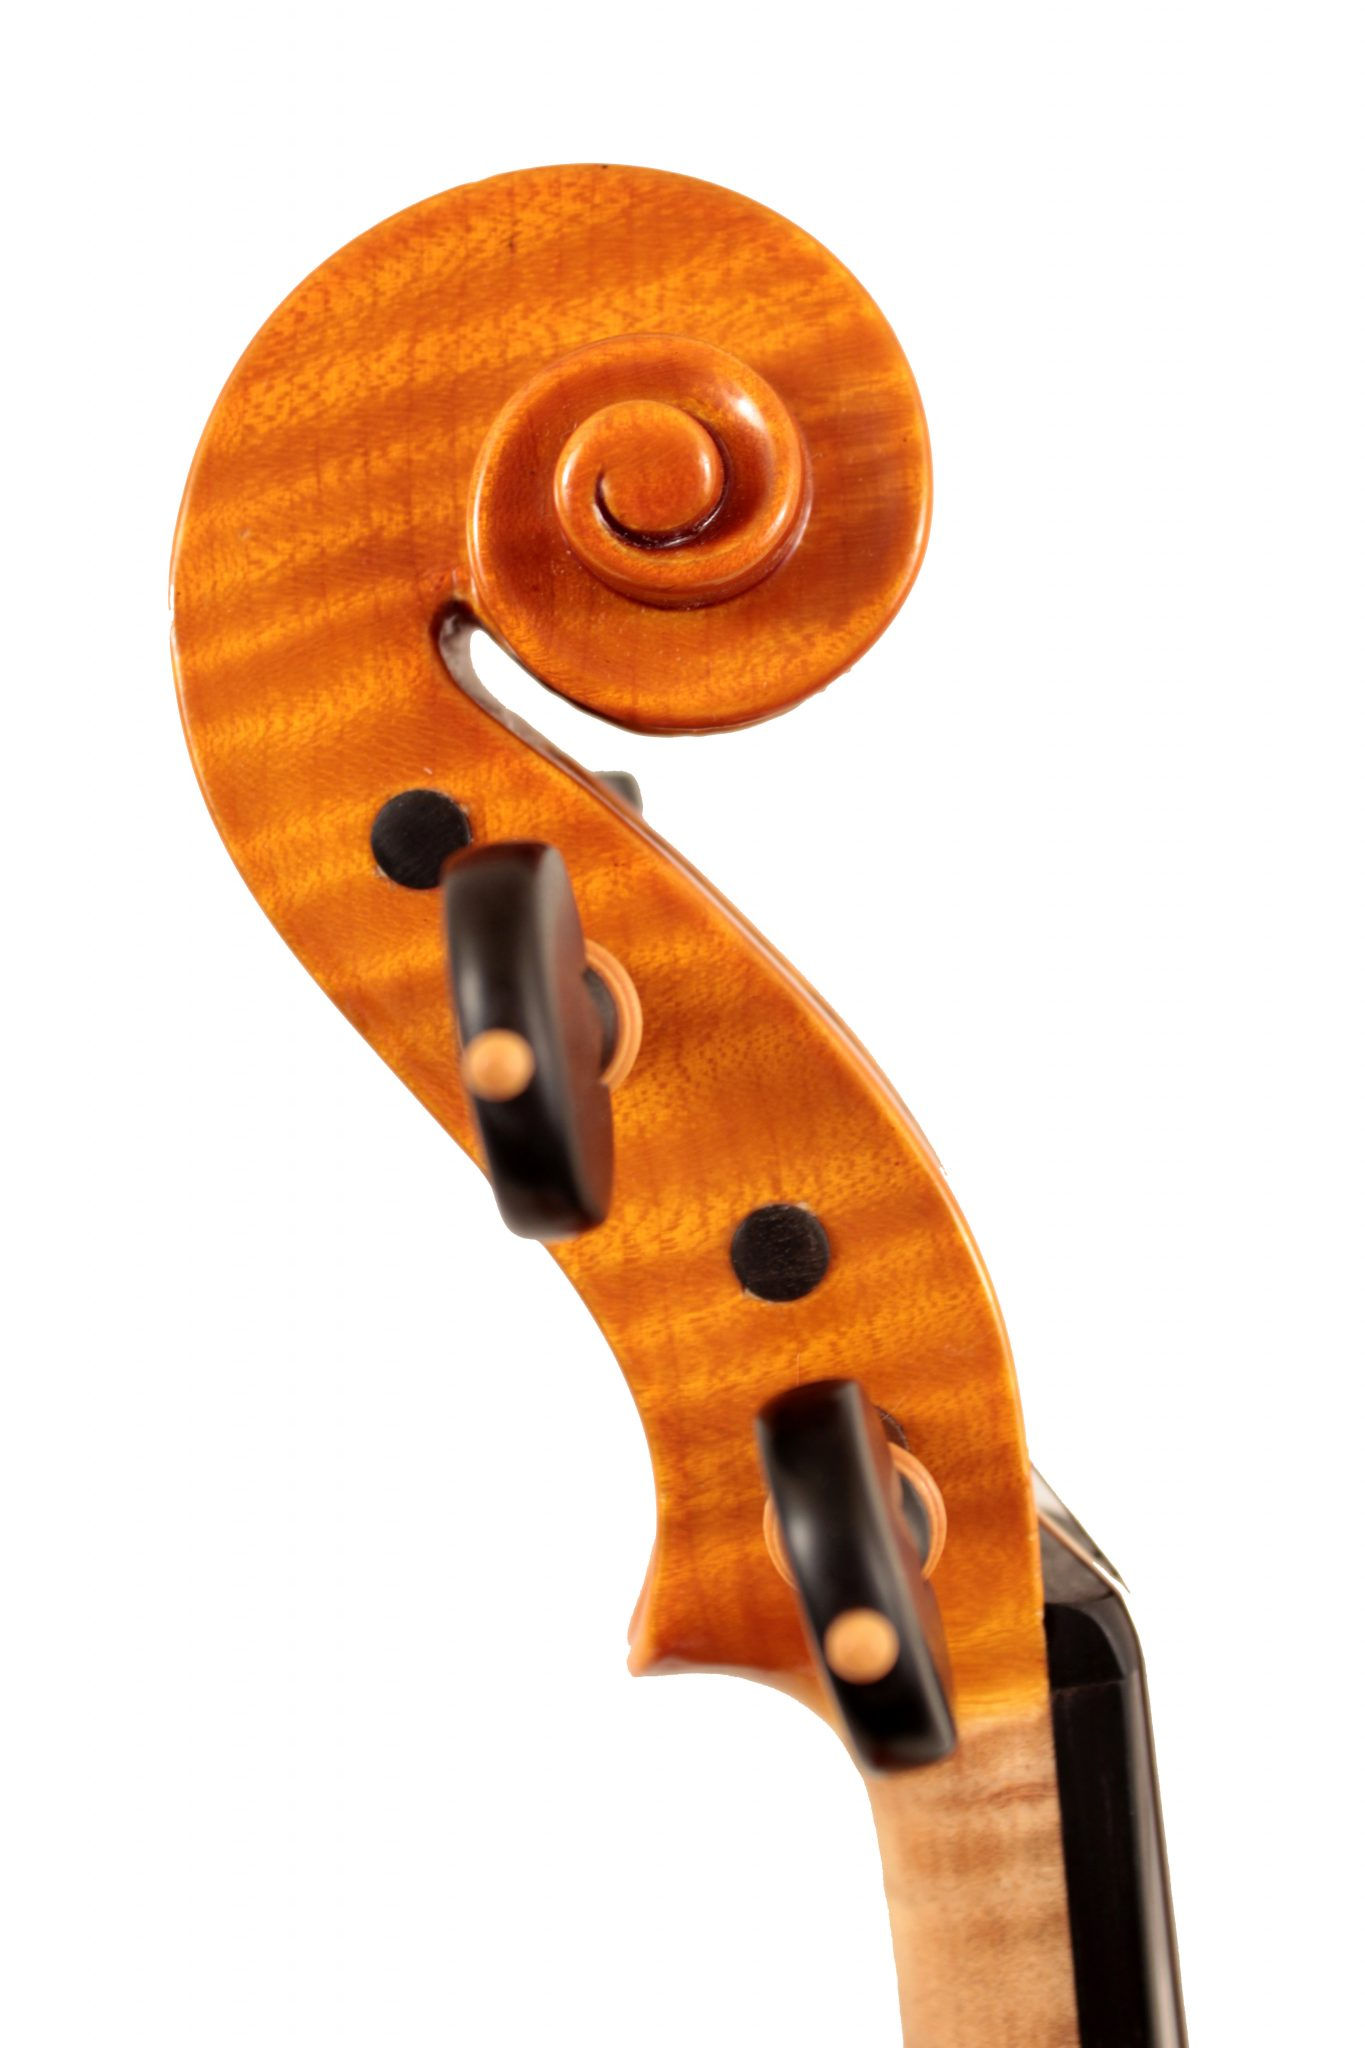 Violin by Gianluca Poli Bologna 2007 for sale at Bridgewood and Neitzert London